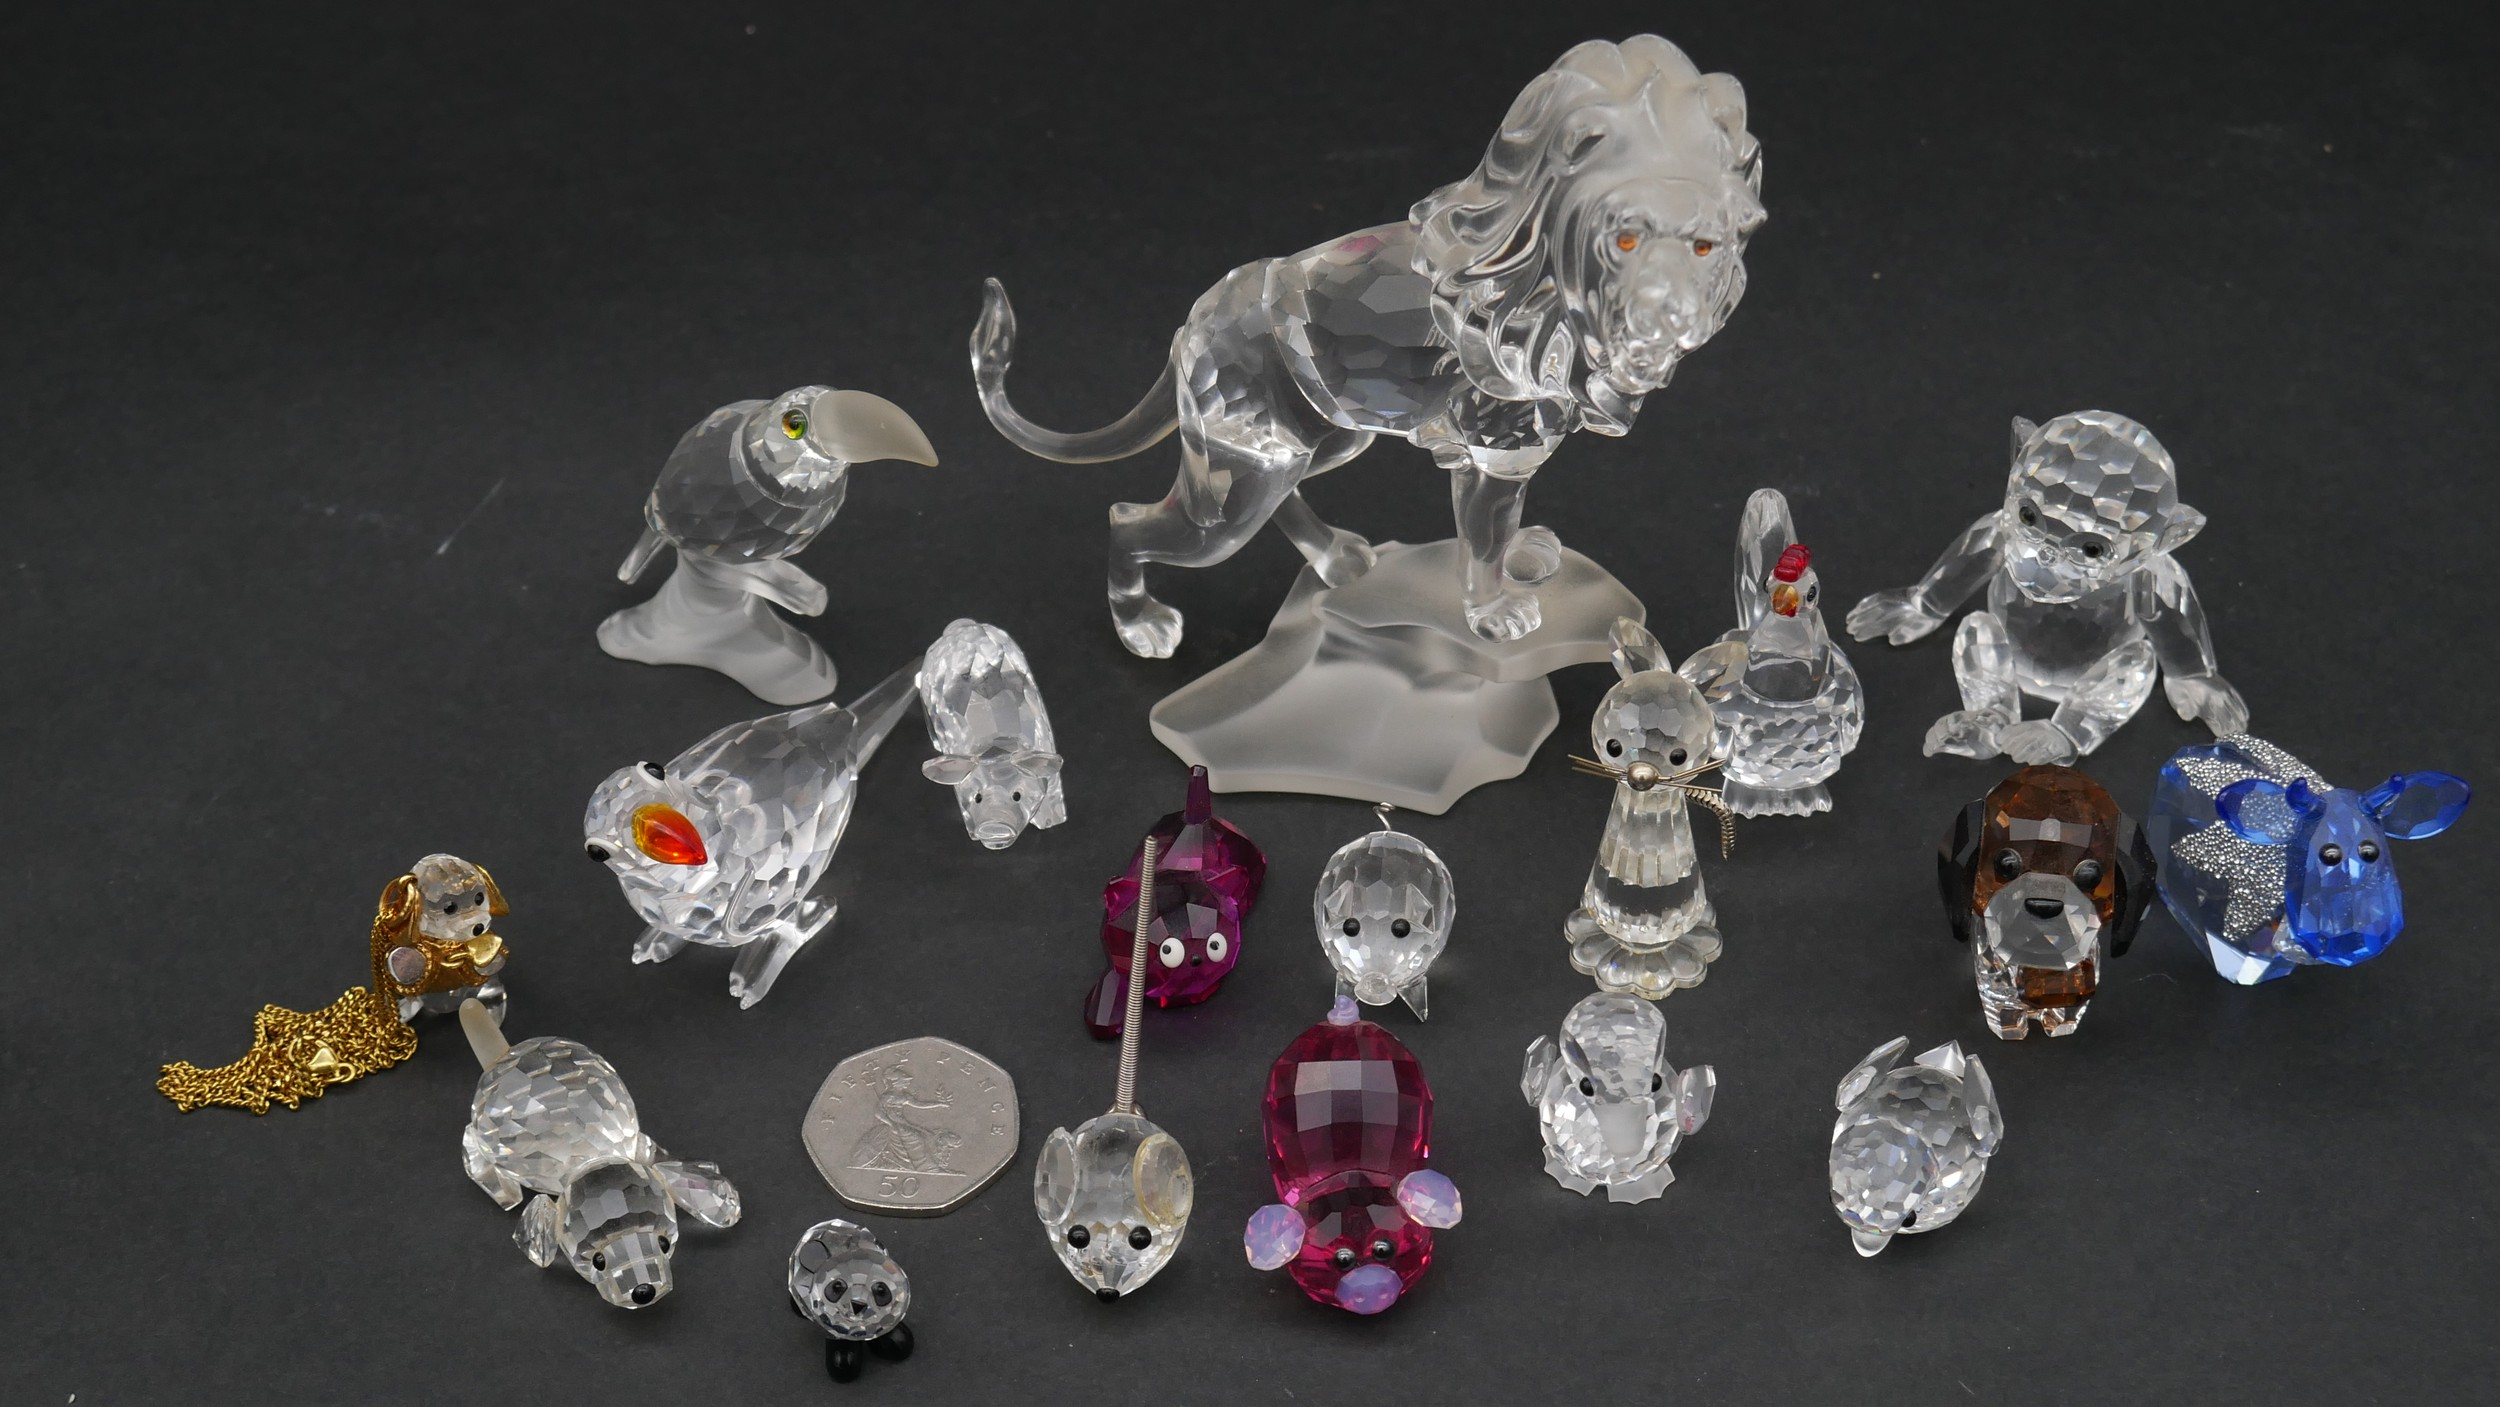 A collection of seventeen Swarovski cut crystal miniature animals to include a roaring lion, - Image 2 of 10